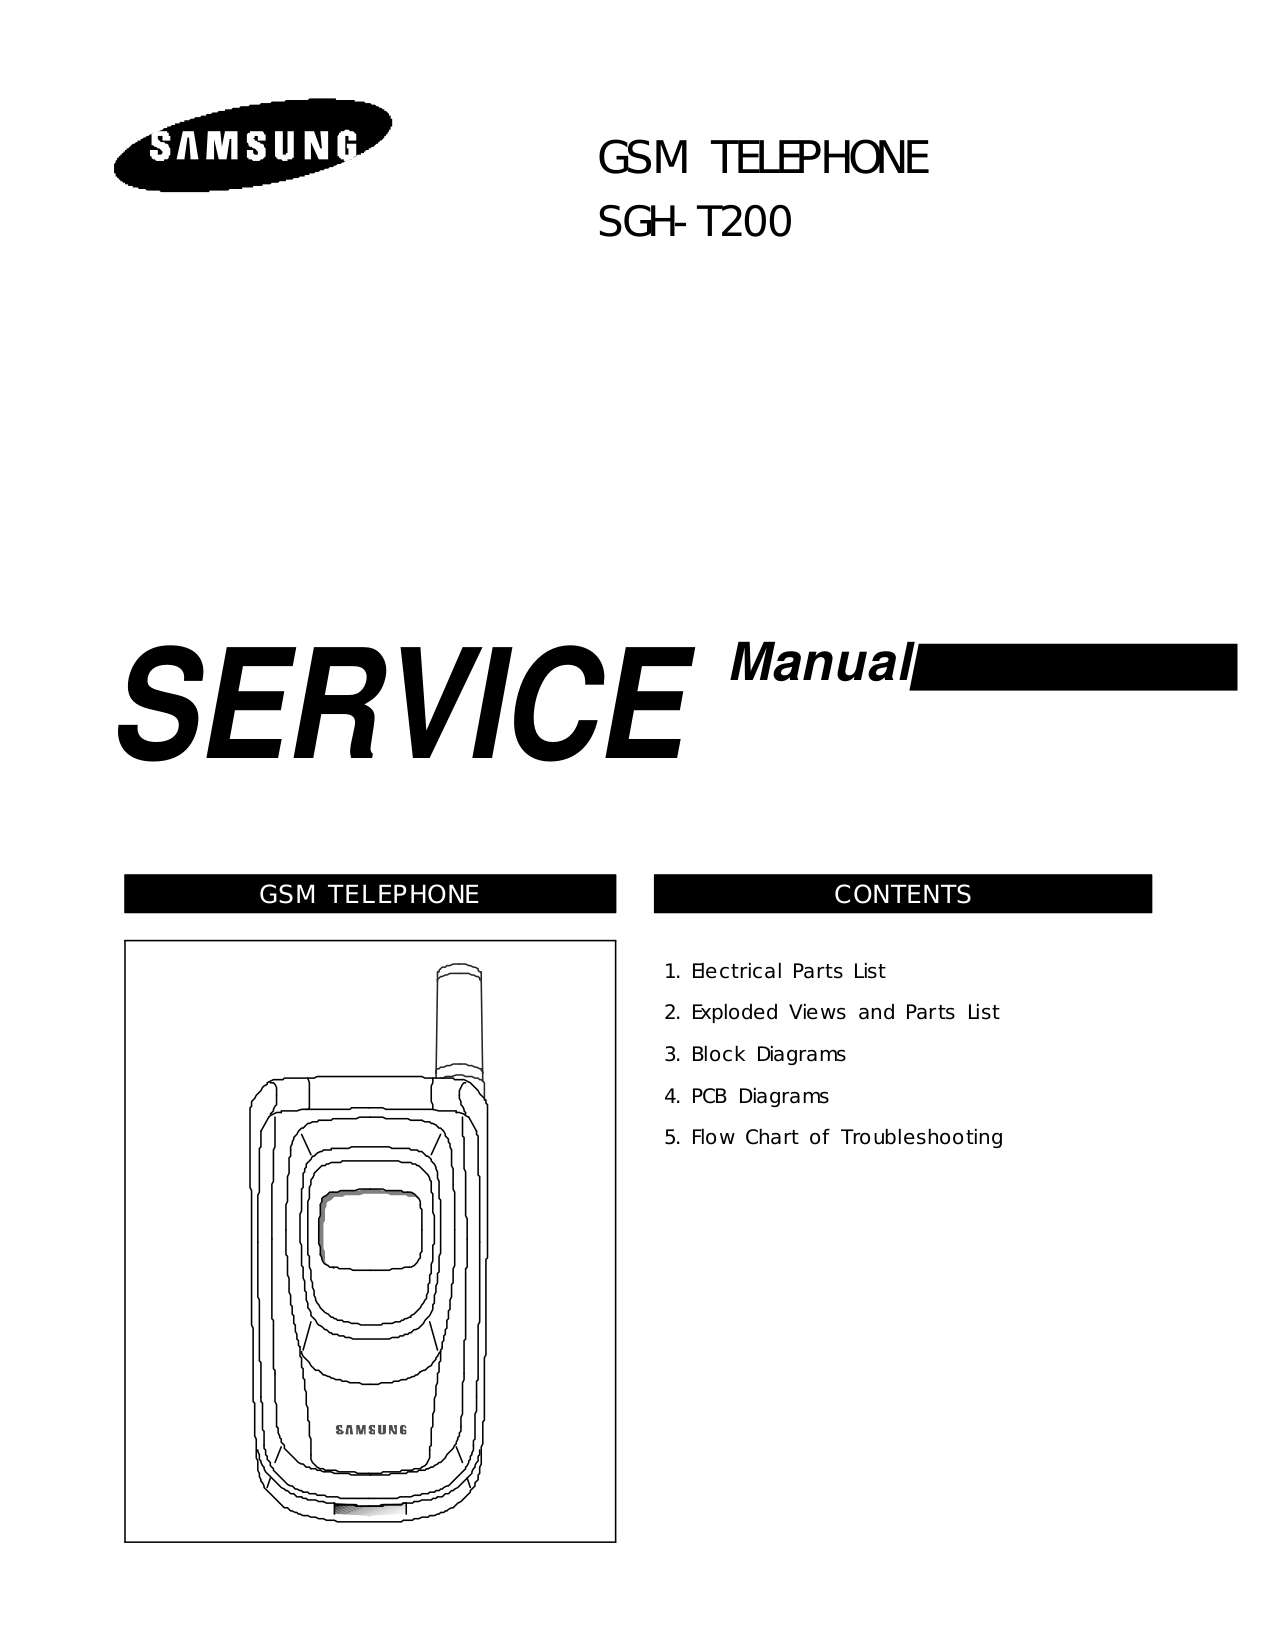 Download Free Pdf For Samsung Sgh T200 Cell Phone Manual Nokia 7900 Service